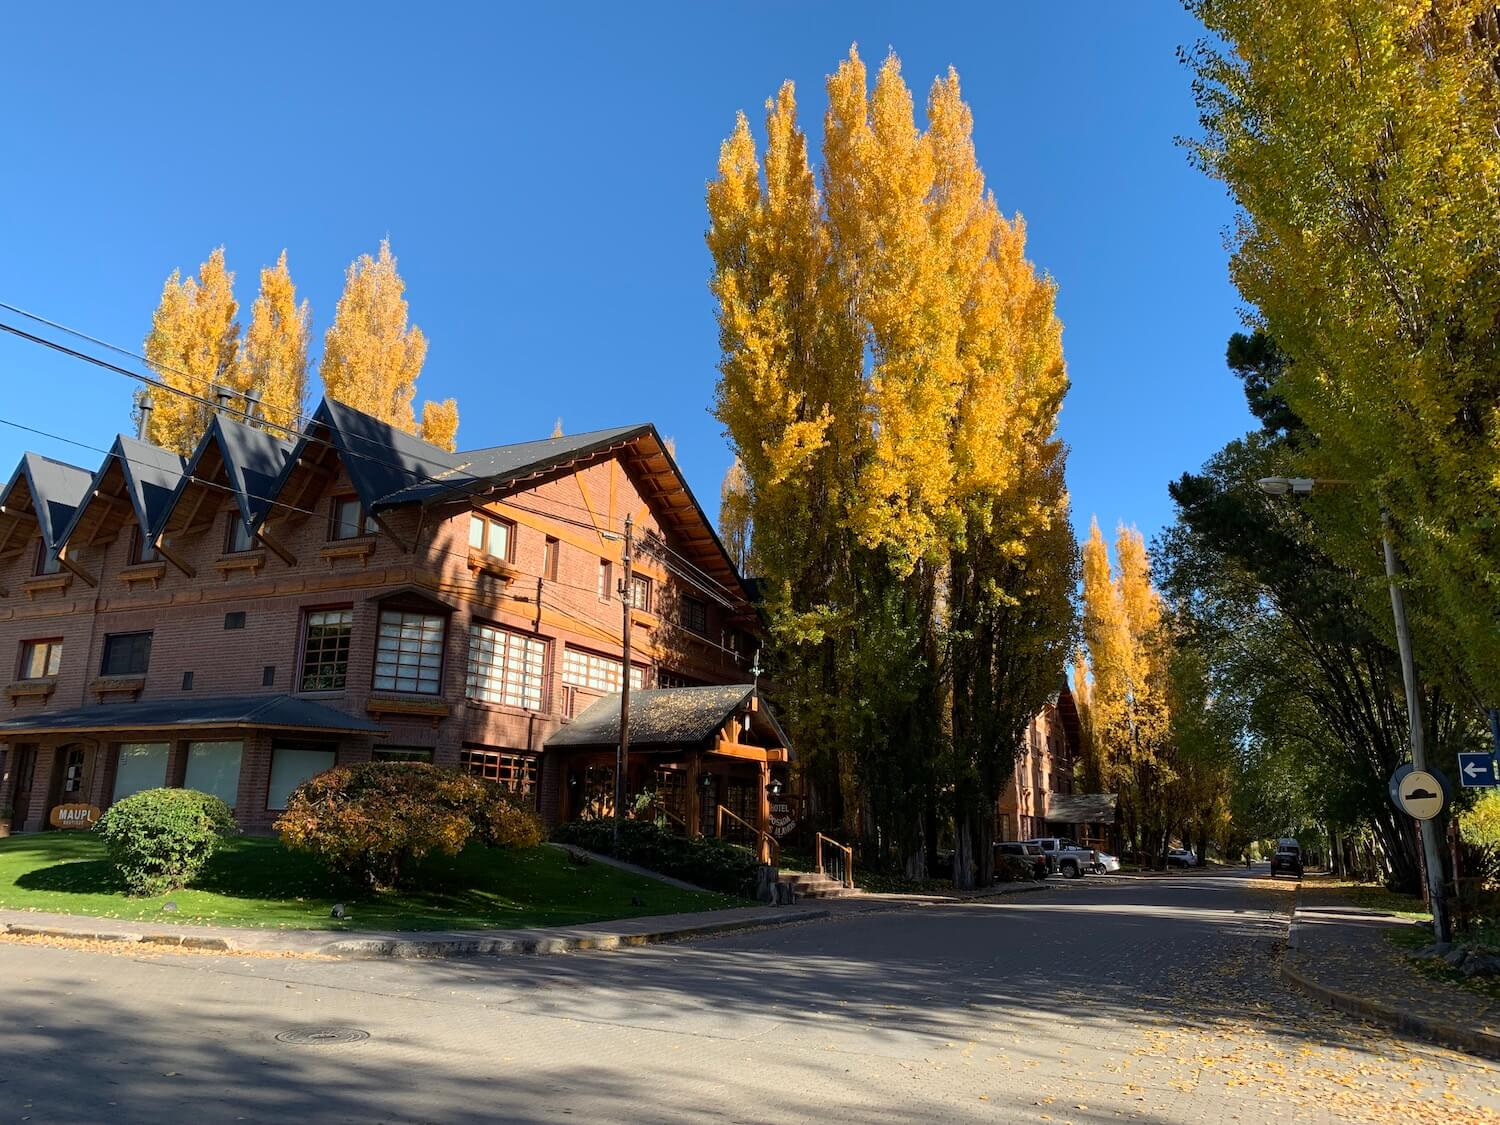 Houses of El Calafate